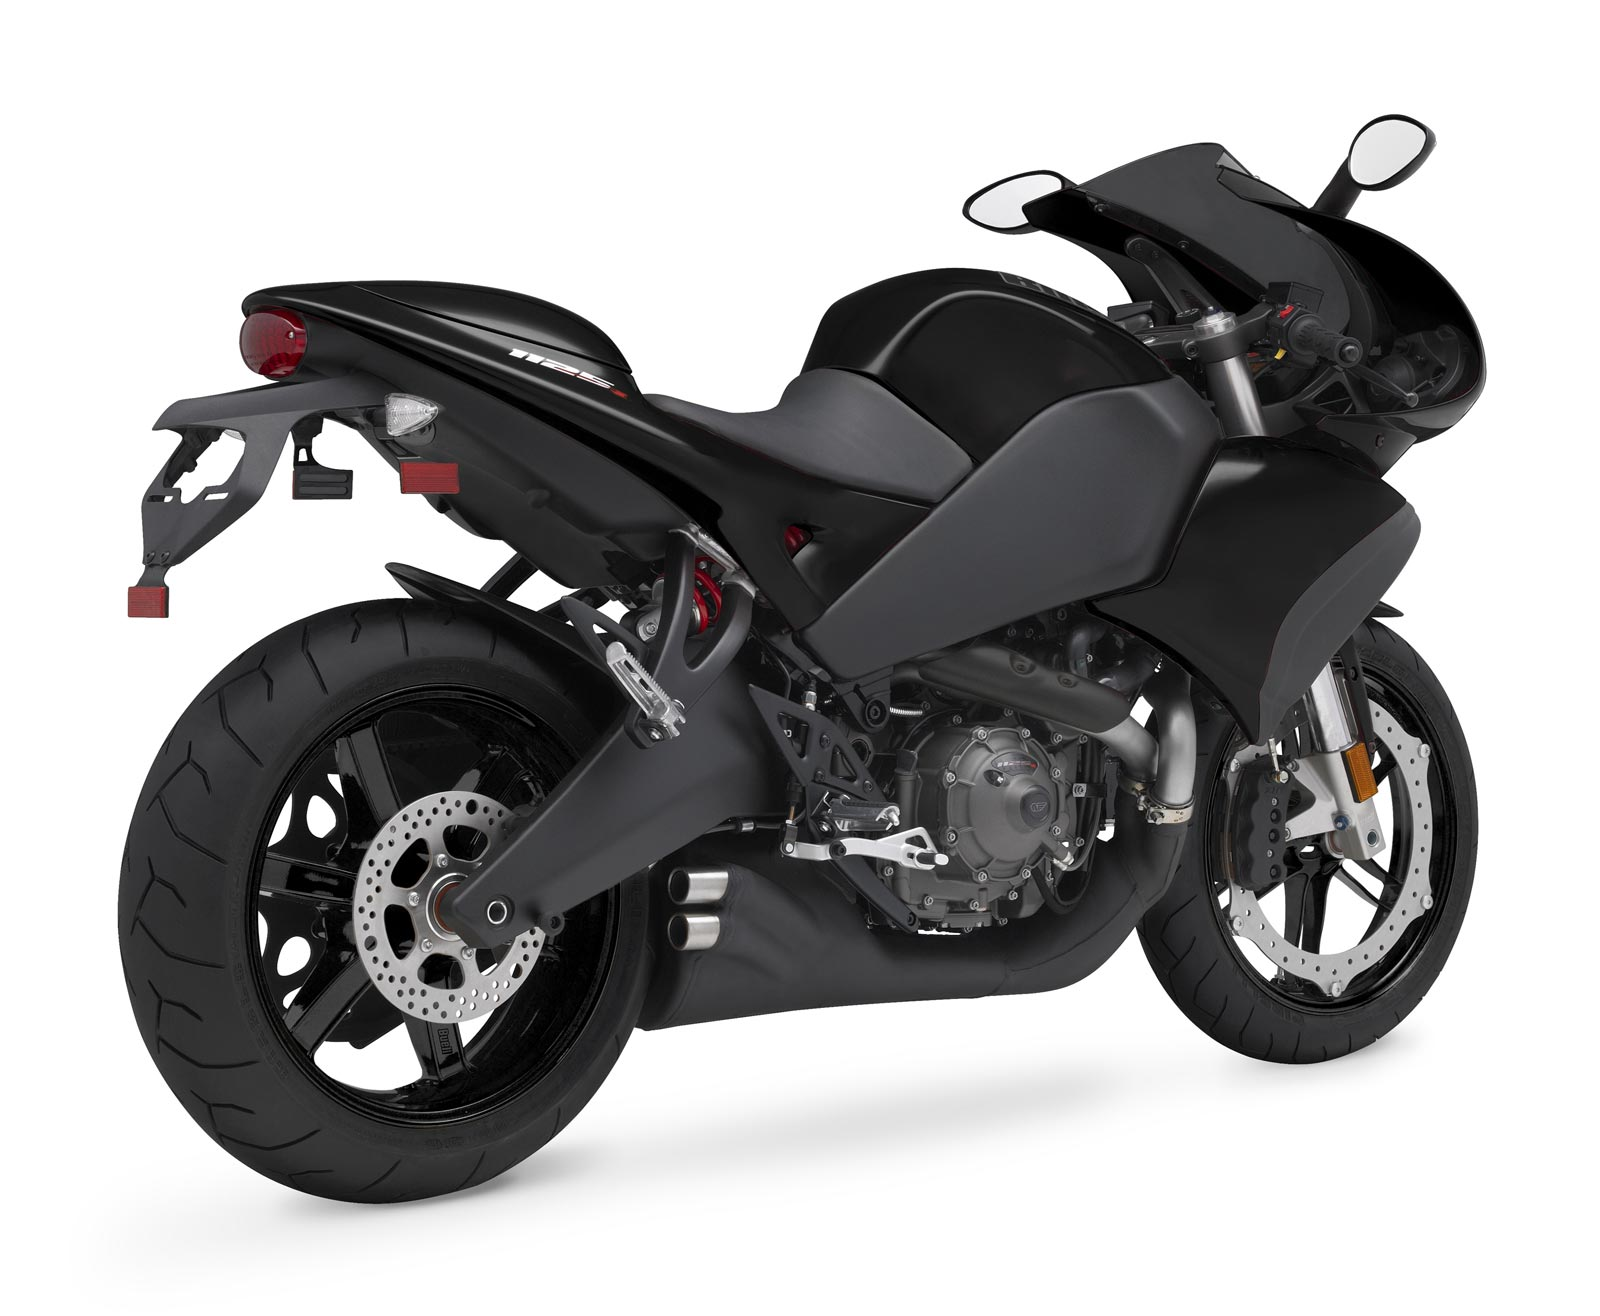 Buell 1125 R 2010 images #66447